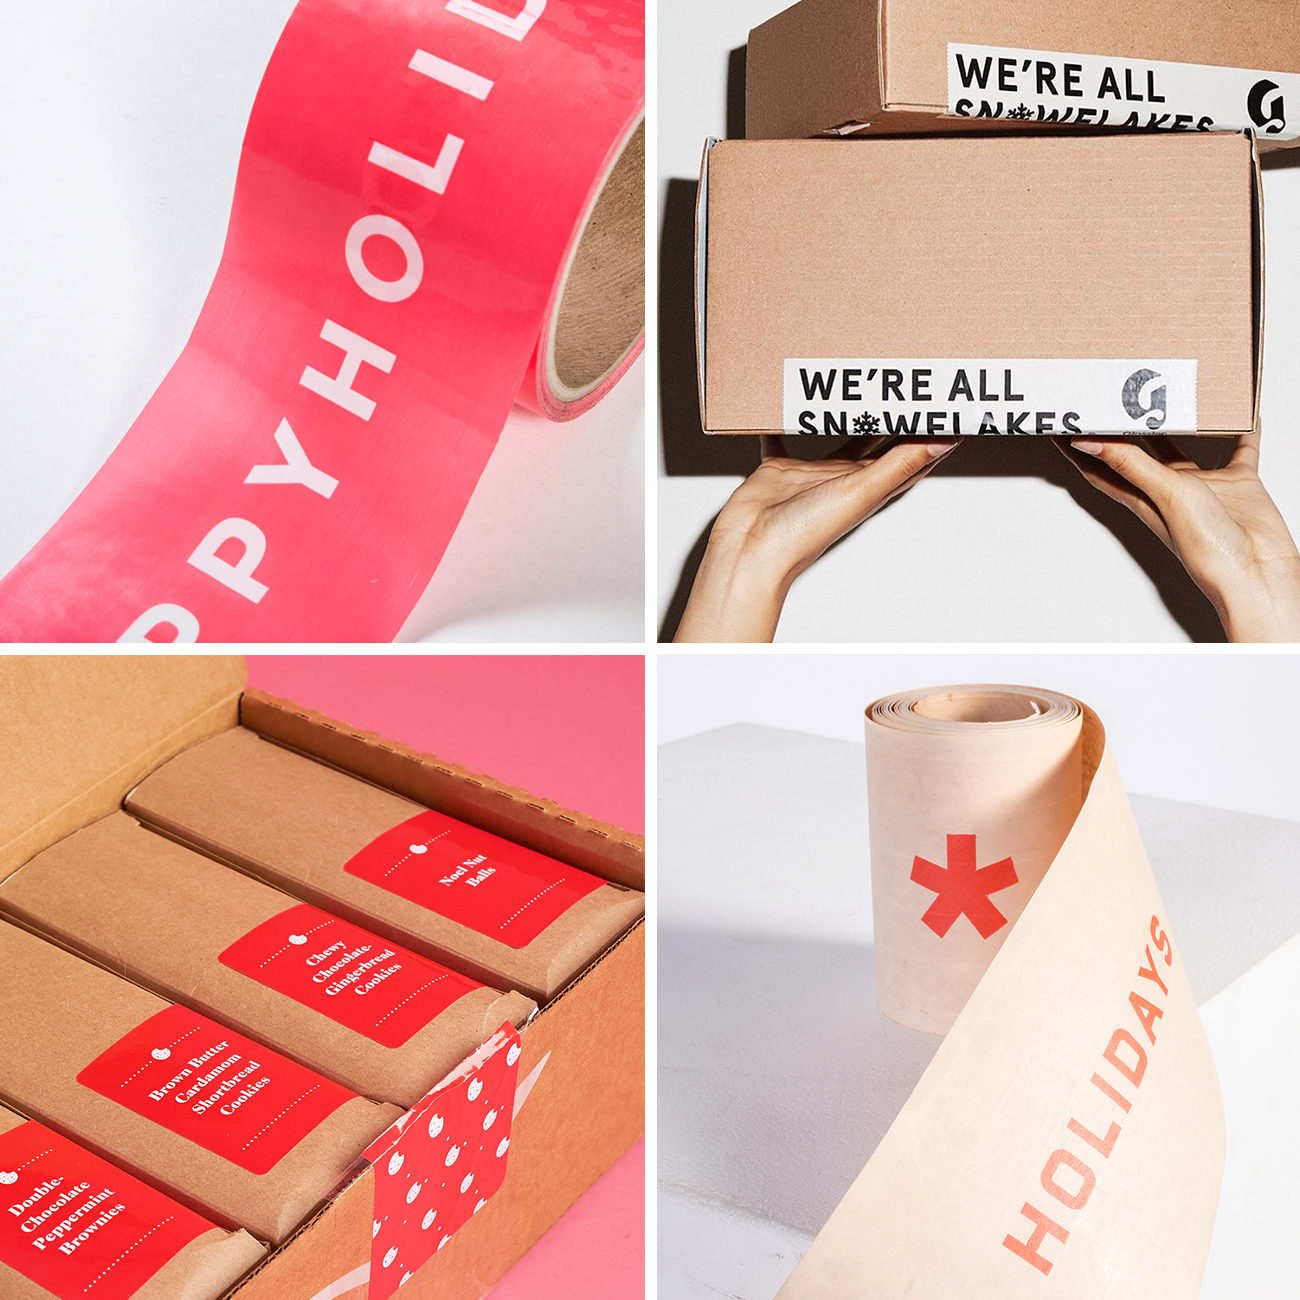 Photos via: Lumi, Glossier, My Subscription Addiction 90 Ideas to Spruce Up Your Holiday Packaging Design